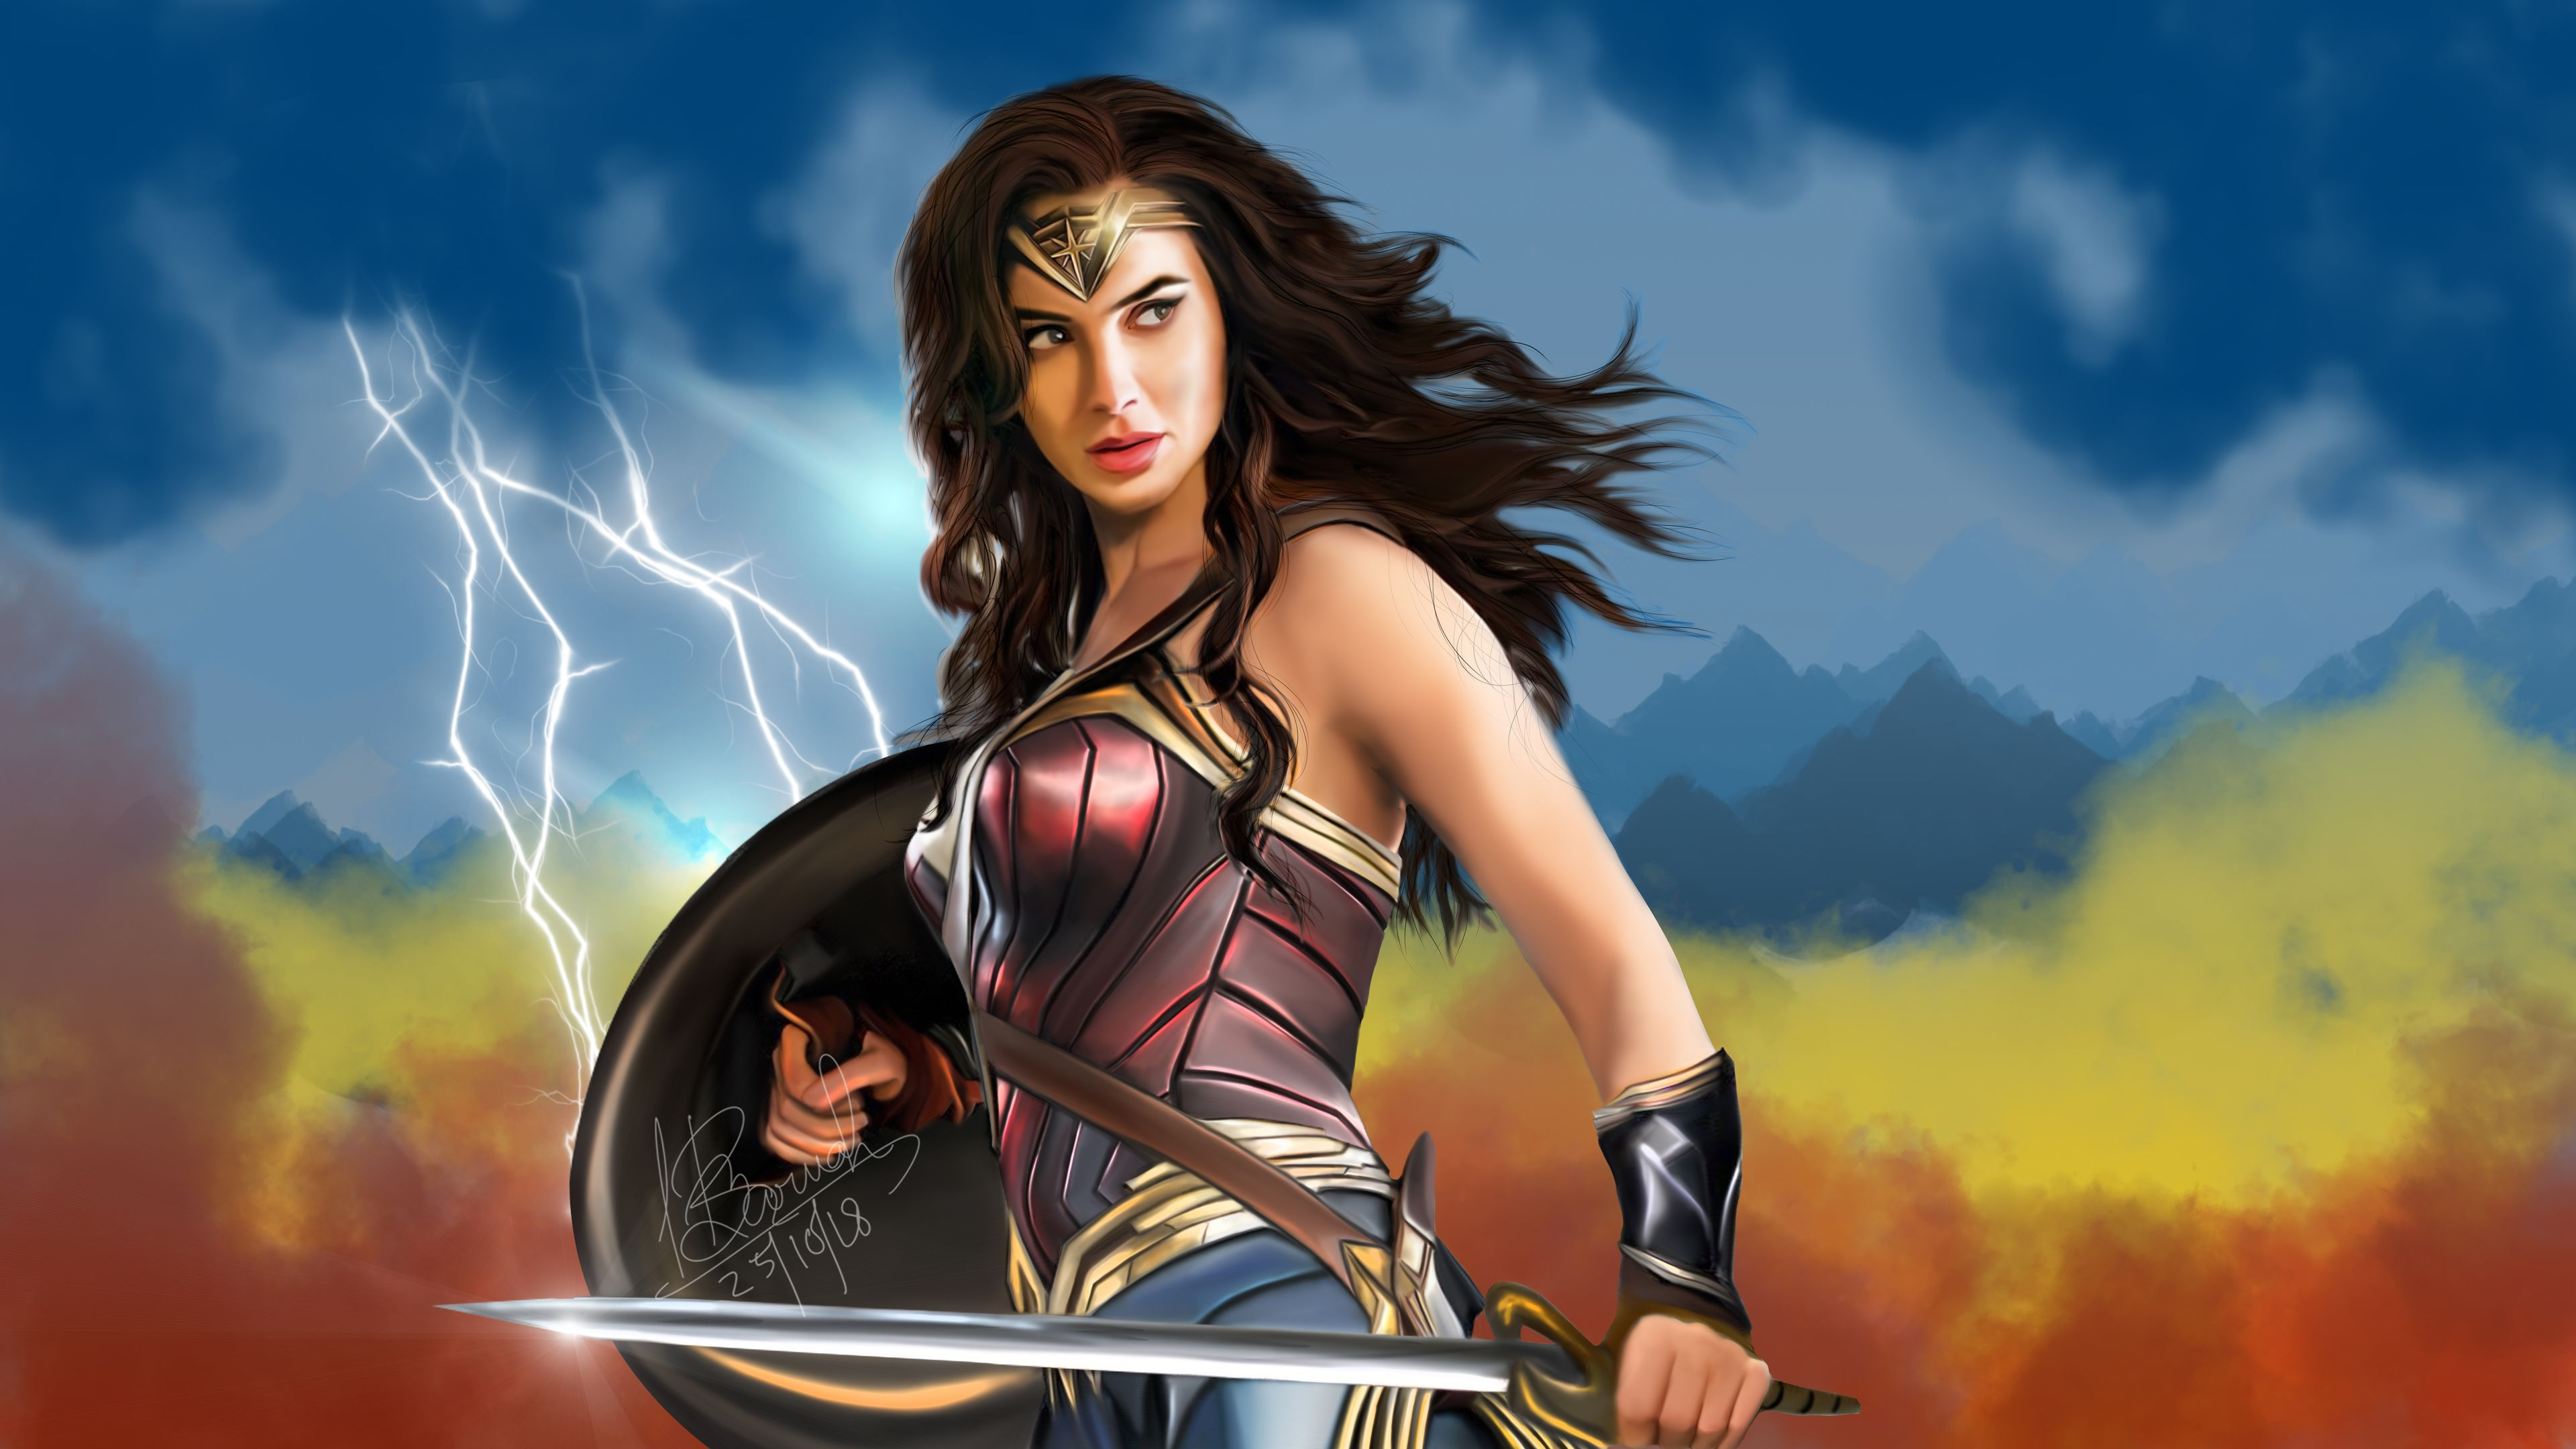 Wonder Woman Fan Art 4k Wonder Woman Wallpapers Superheroes Wallpapers Hd Wallpapers Digital Art Wallpapers Dev Wonder Woman Wonder Woman Fan Art Superhero